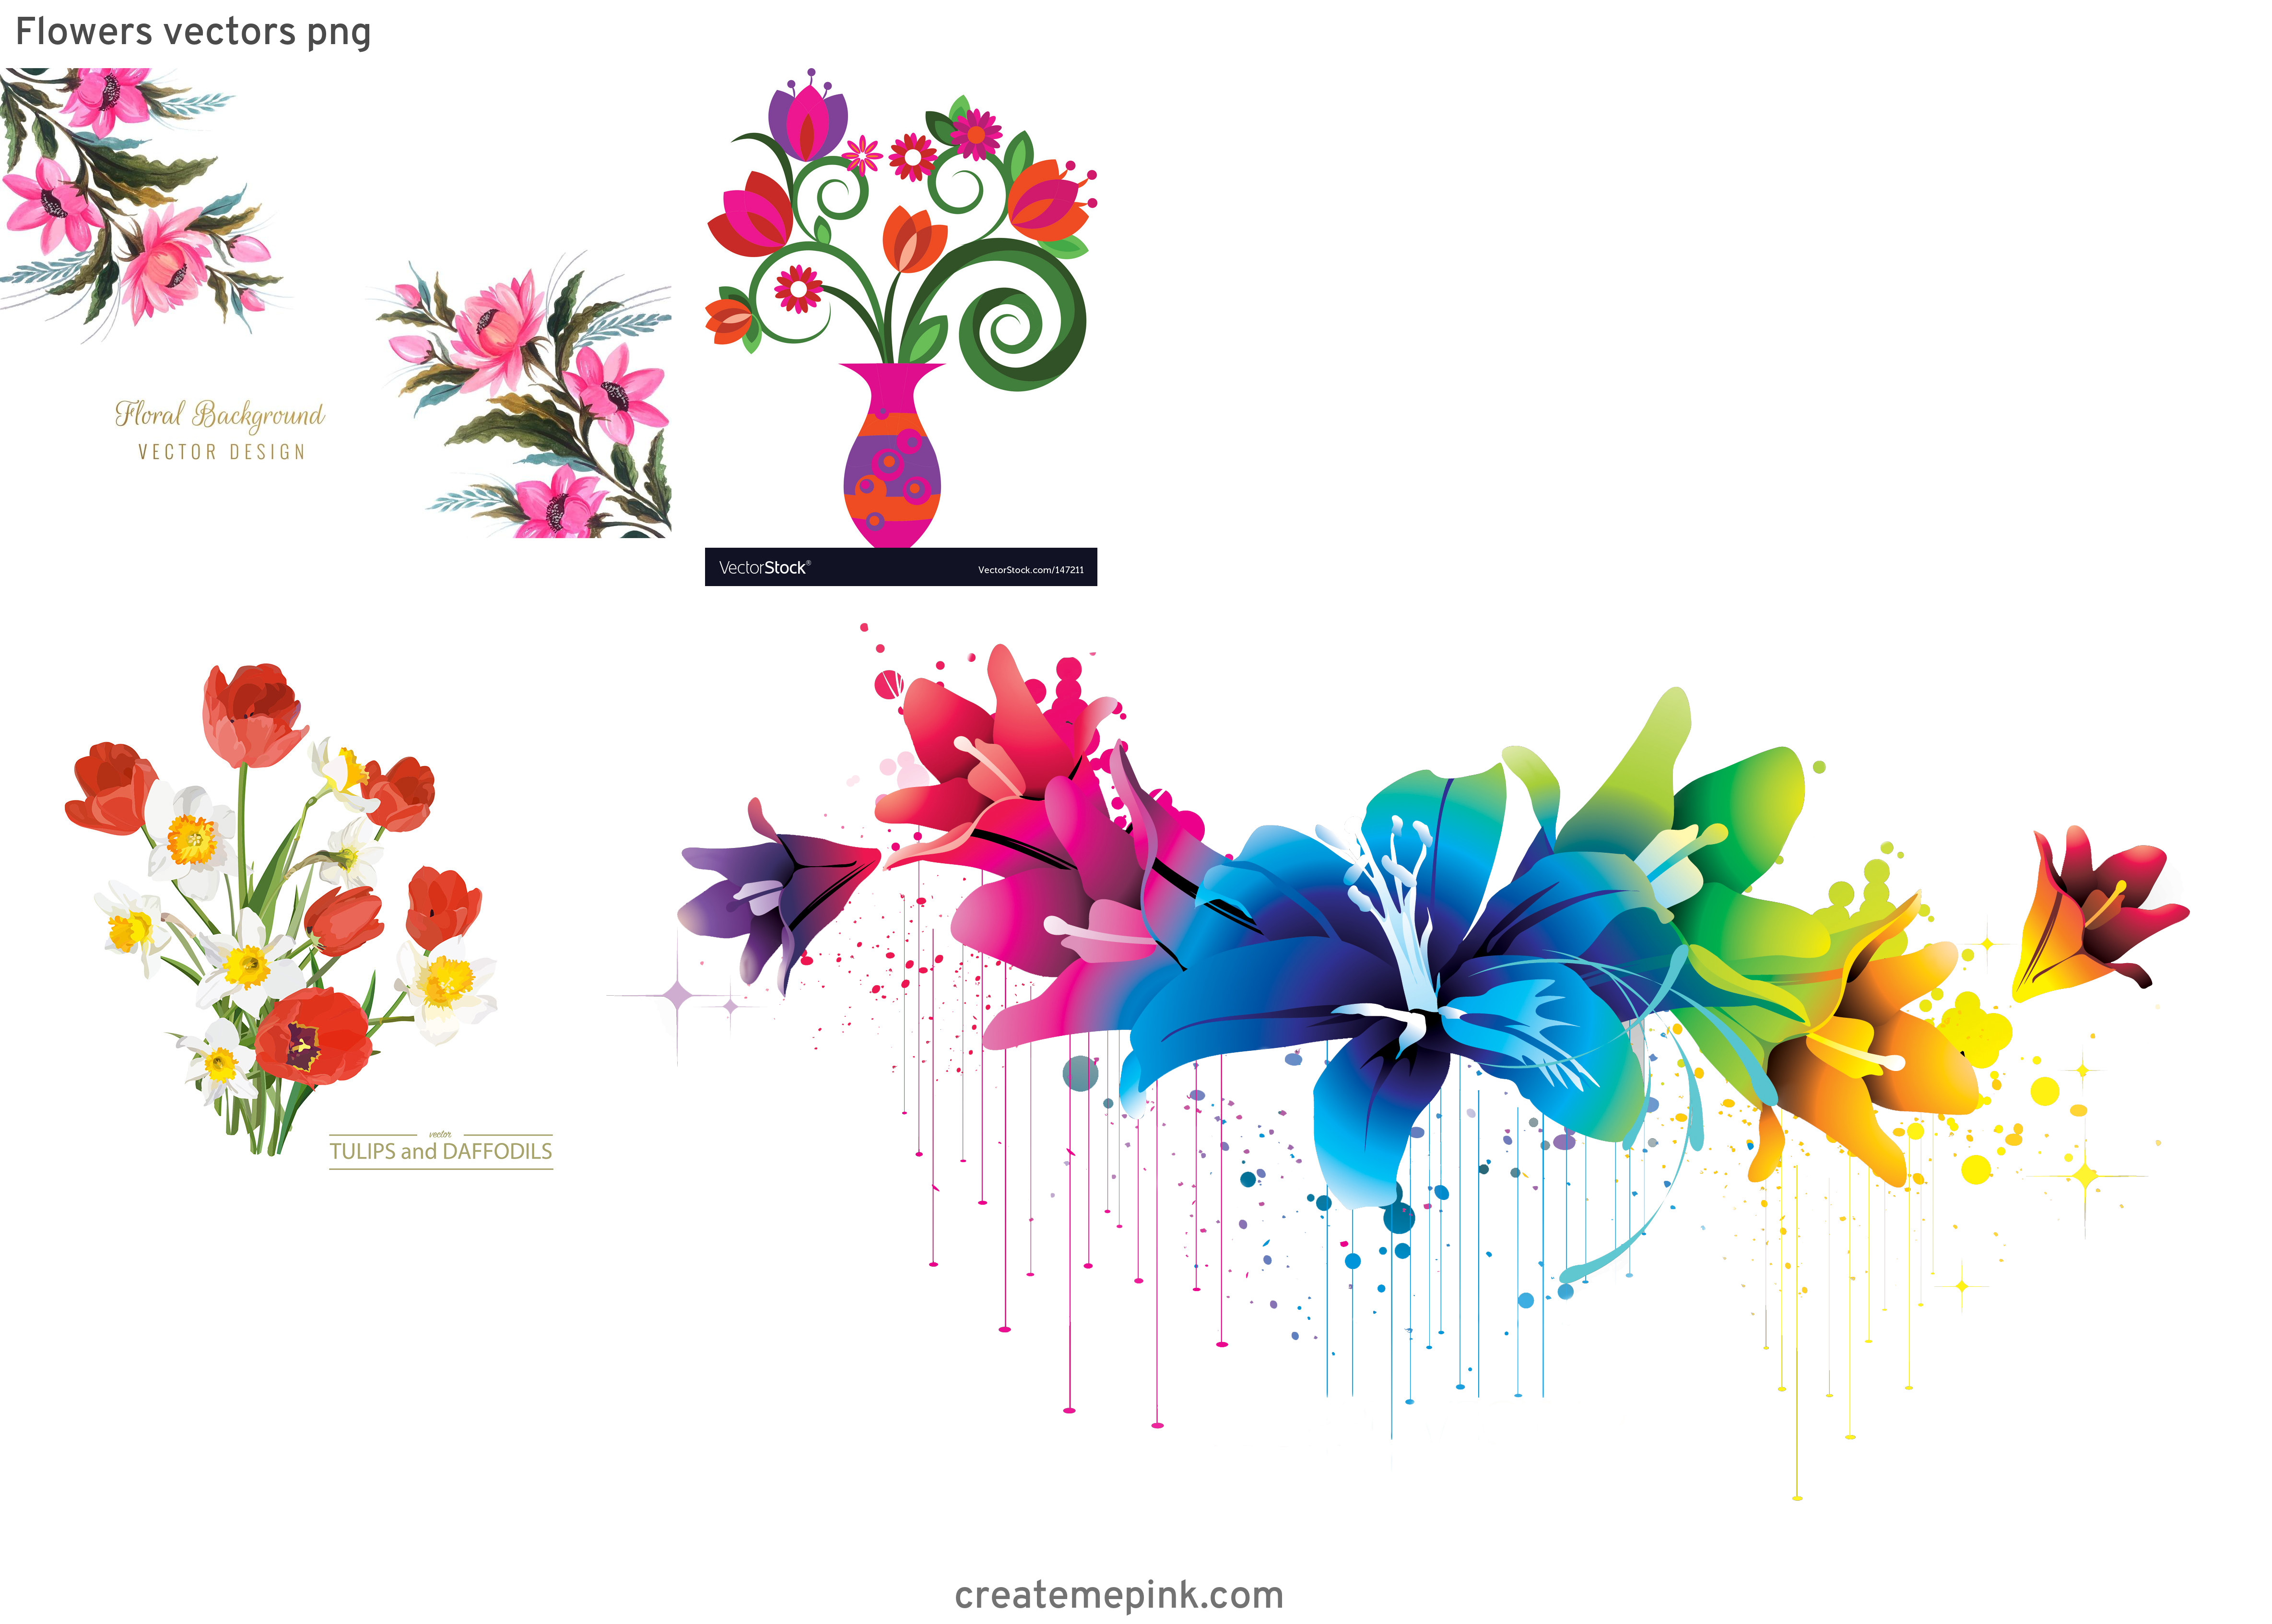 Vector Graphics Floral: Flowers Vectors Png